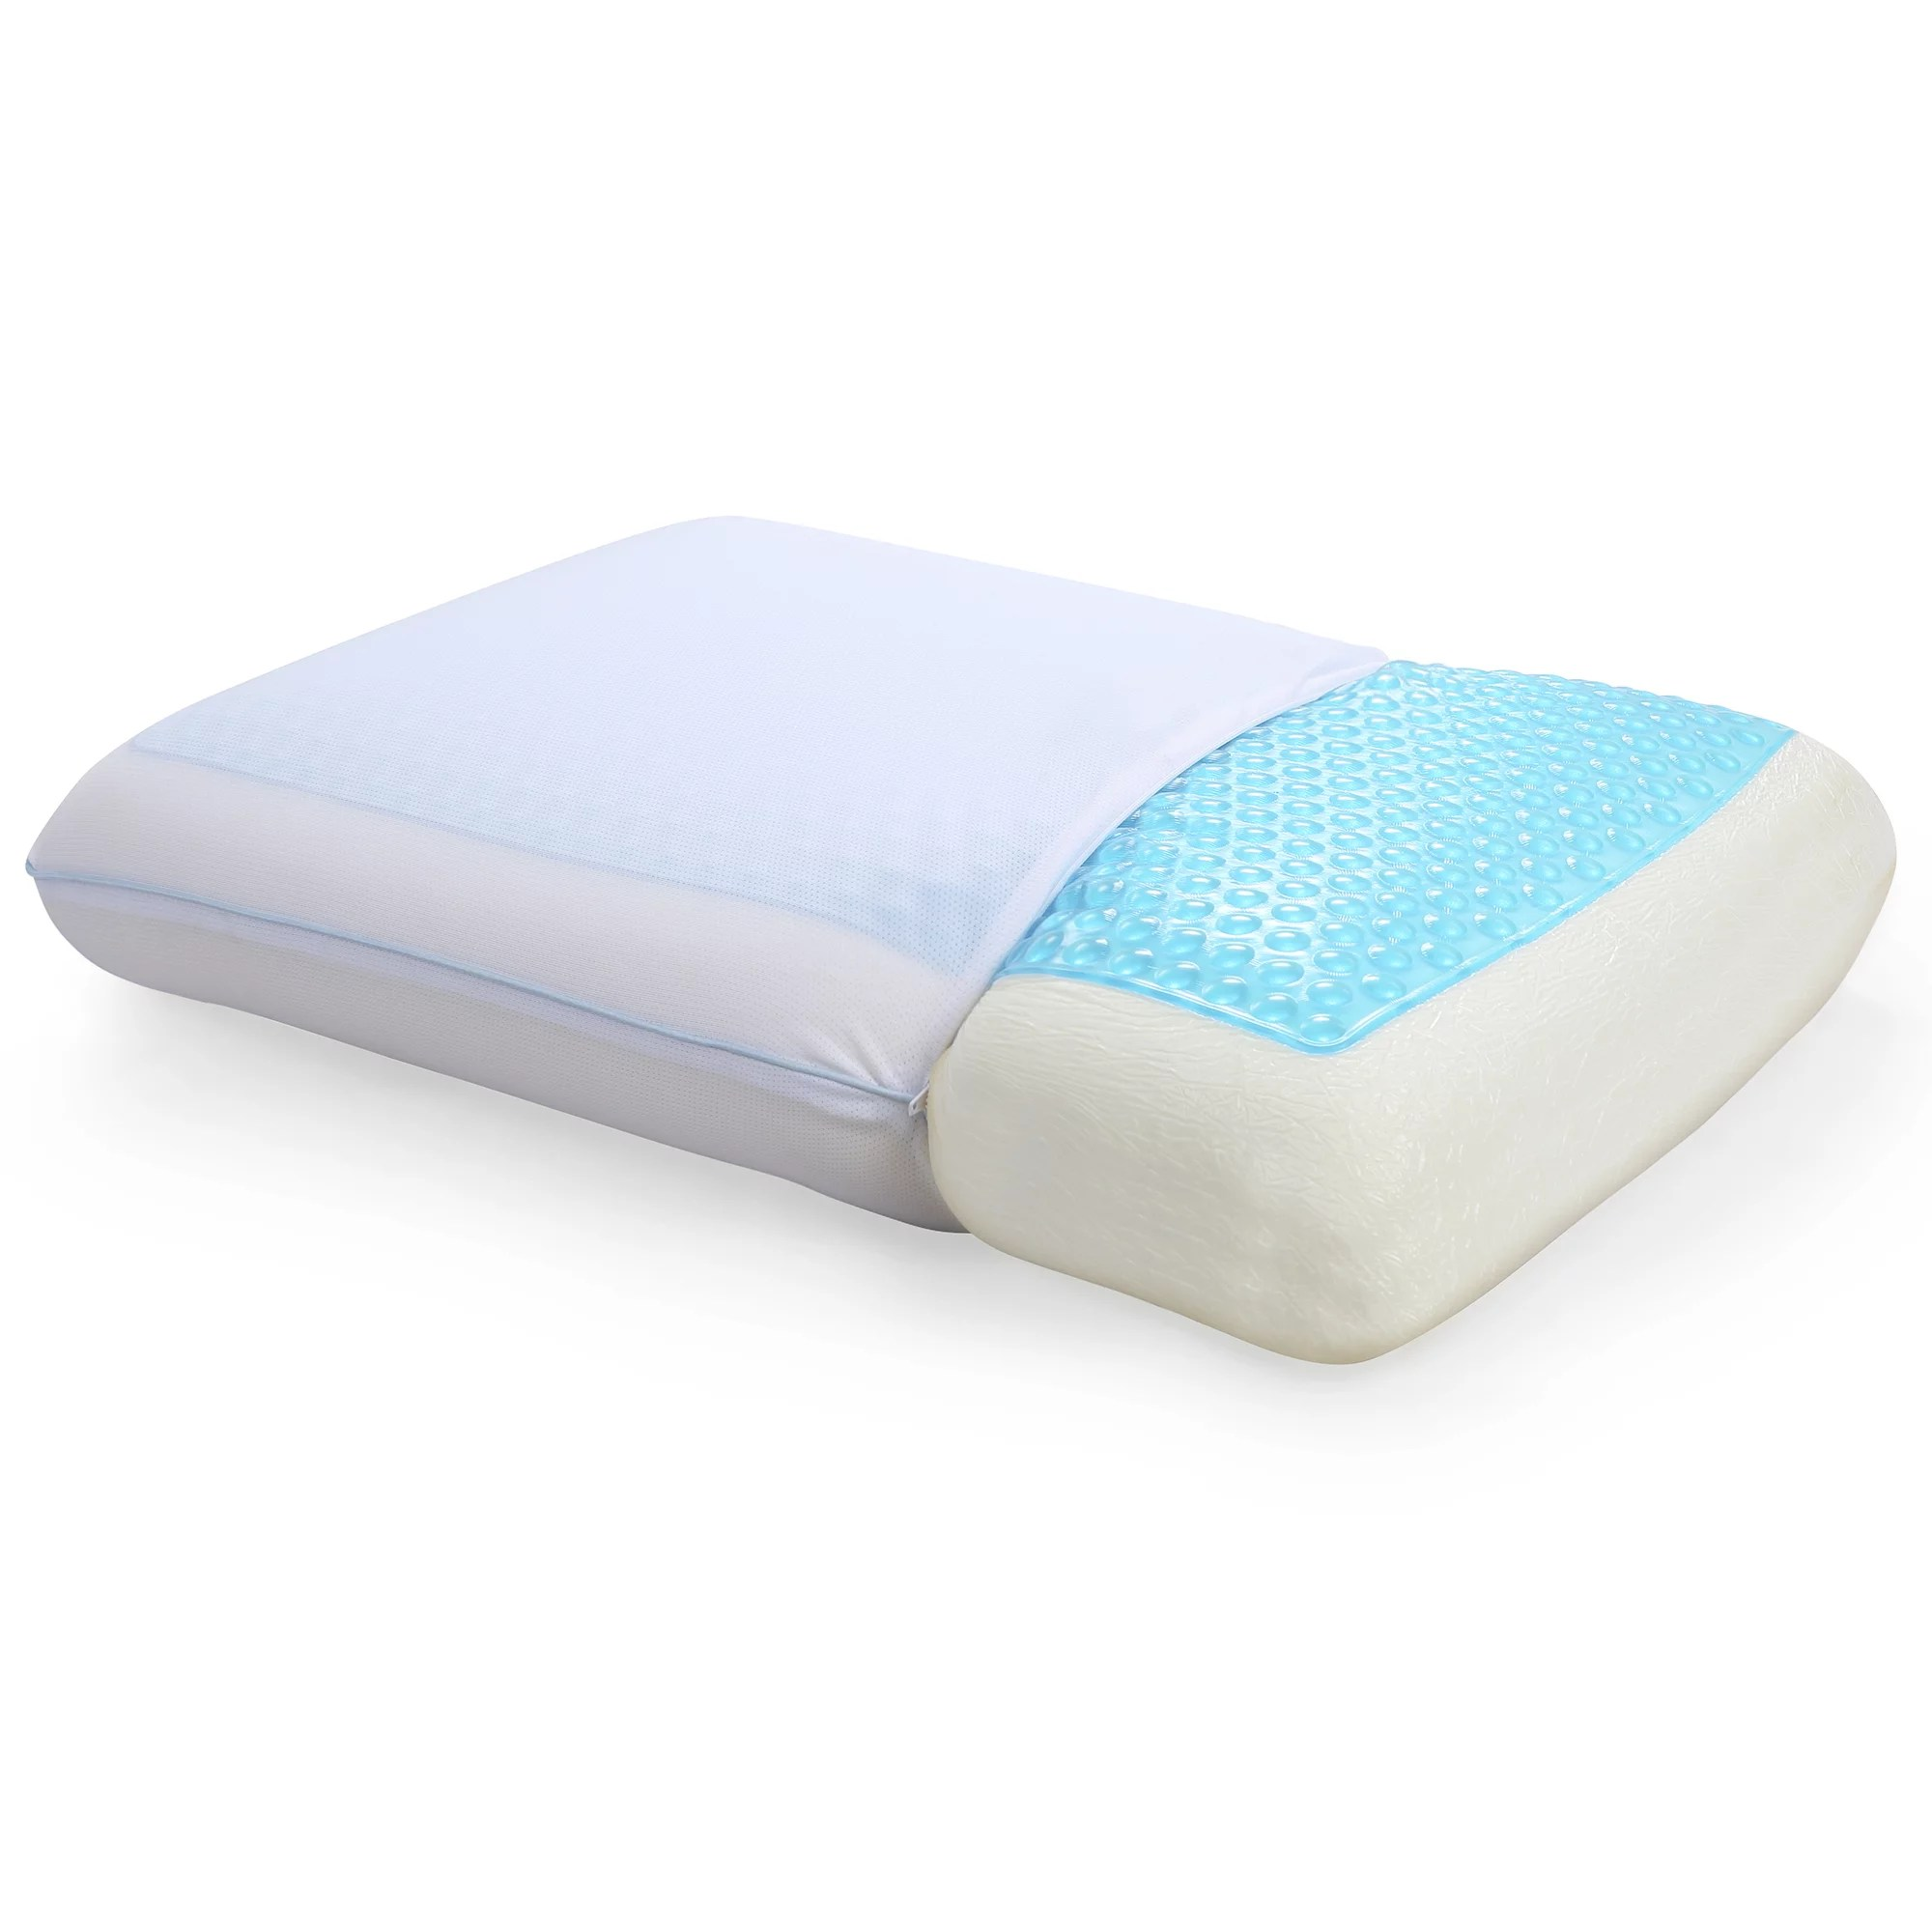 Gel Infused Memory Foam Pillow Modern Sleep Reversible Cool Gel And Memory Foam Pillow Standard